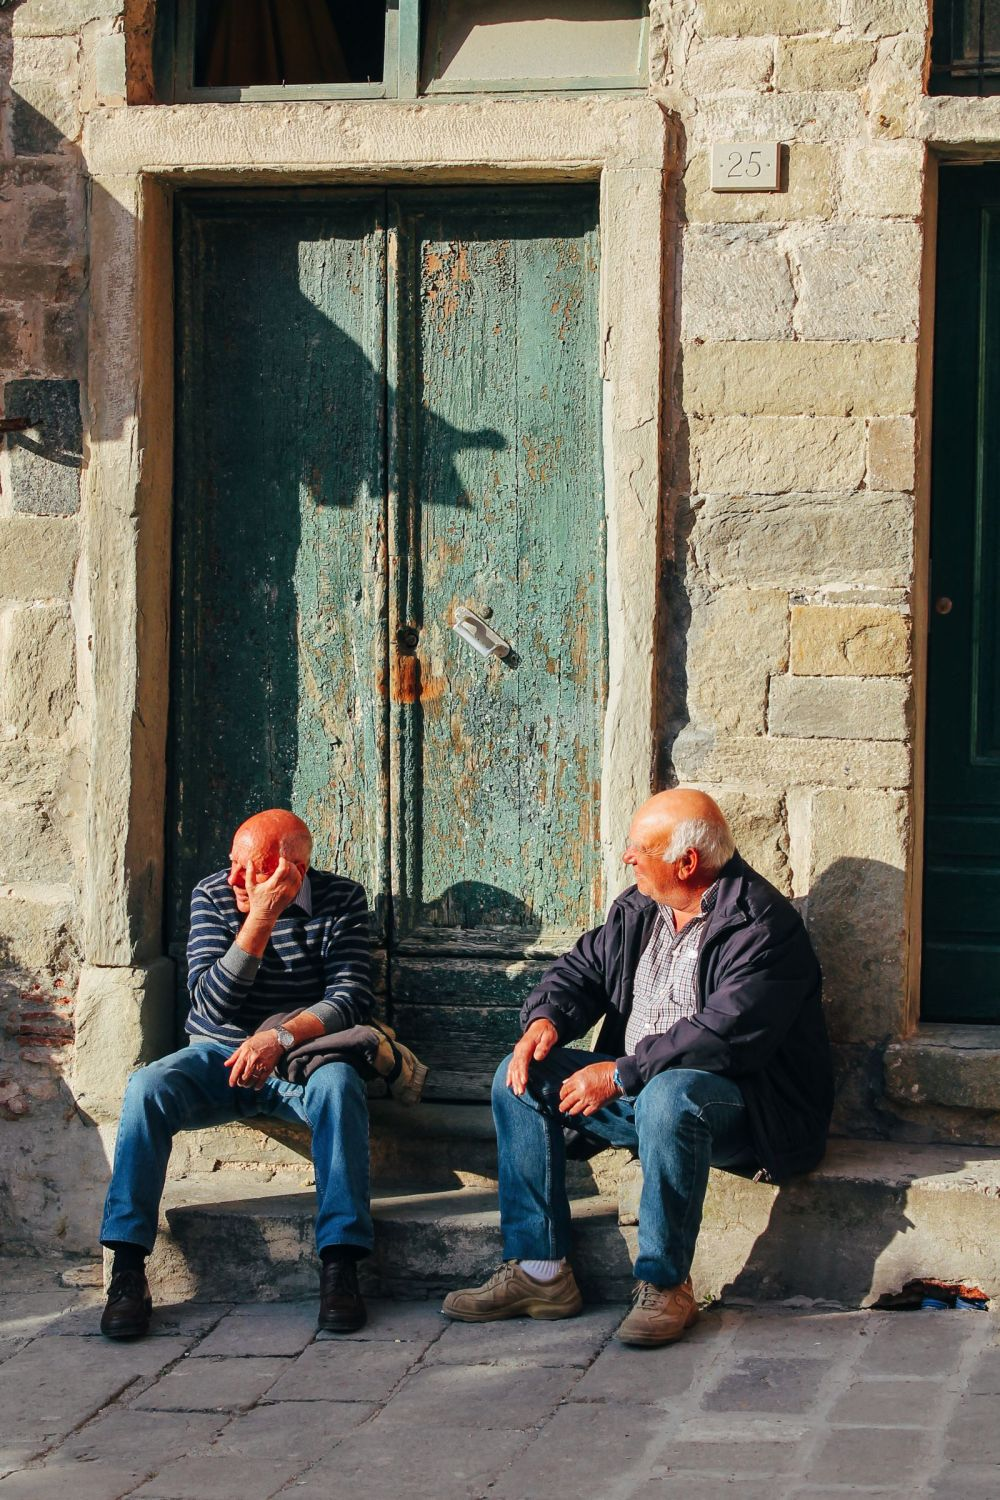 Vernazza in Cinque Terre, Italy - The Photo Diary! [4 of 5] (2)